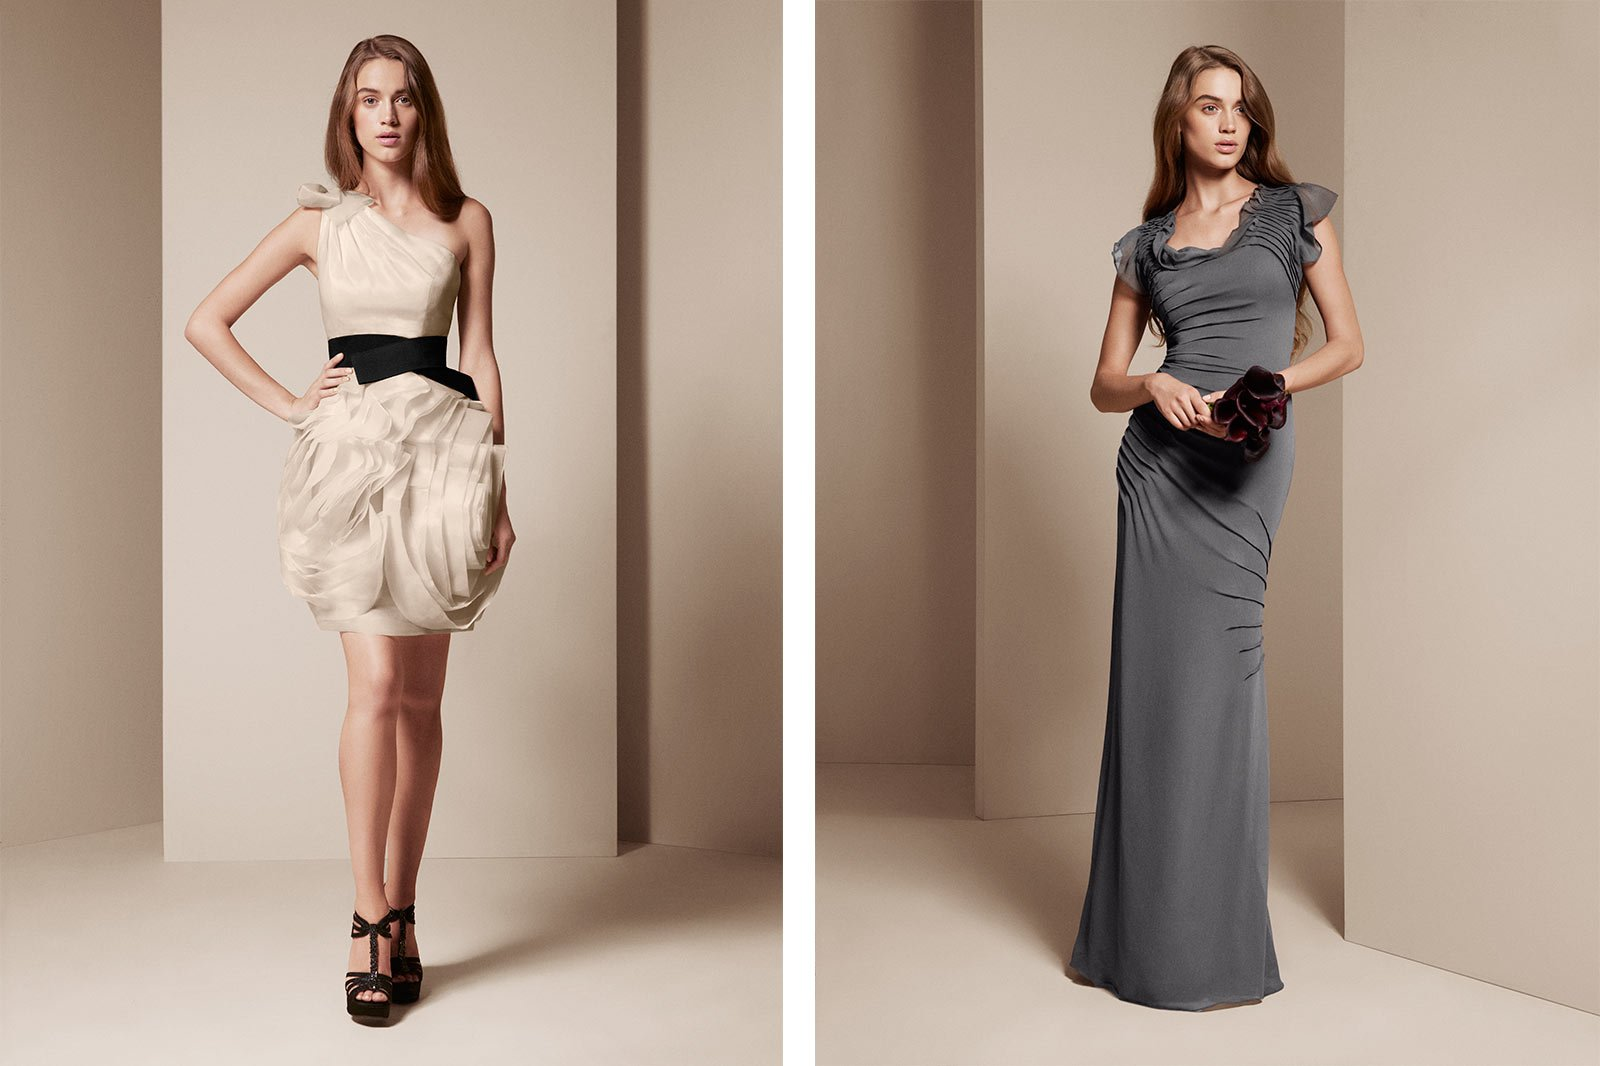 Colorways example - bridesmaid wearing bridesmaid with frills gray and beige